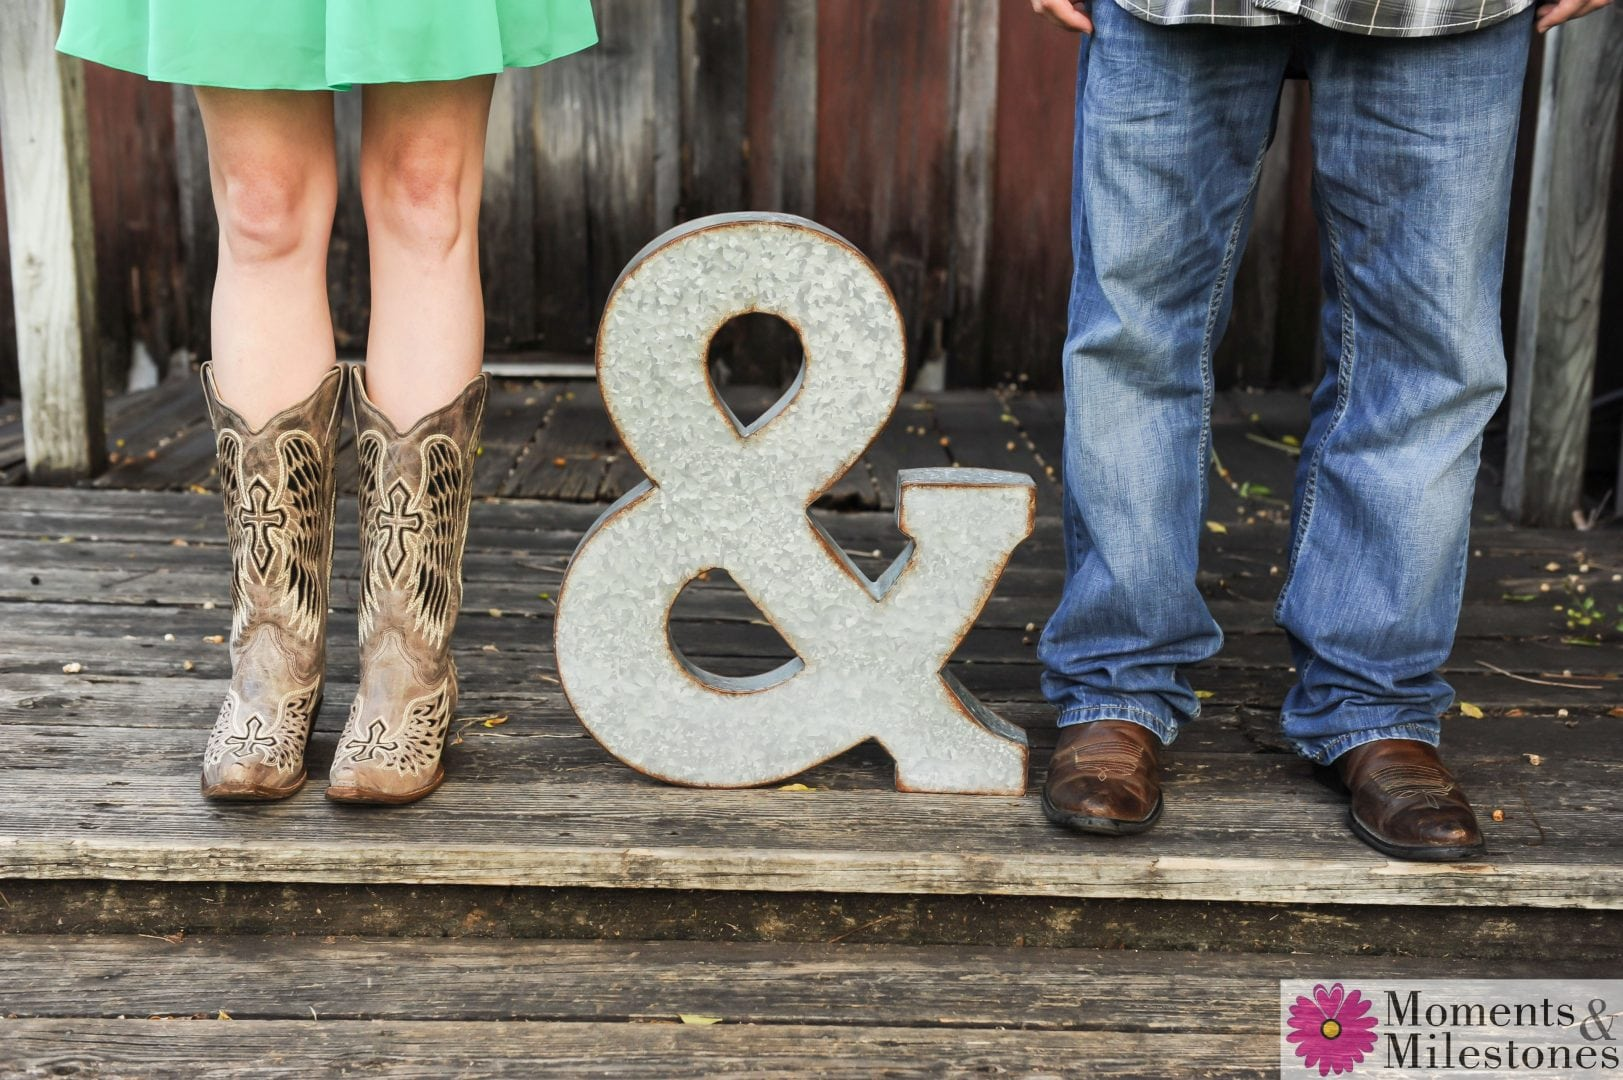 Kimberly & Alejandro's Gruene, TX E-Session